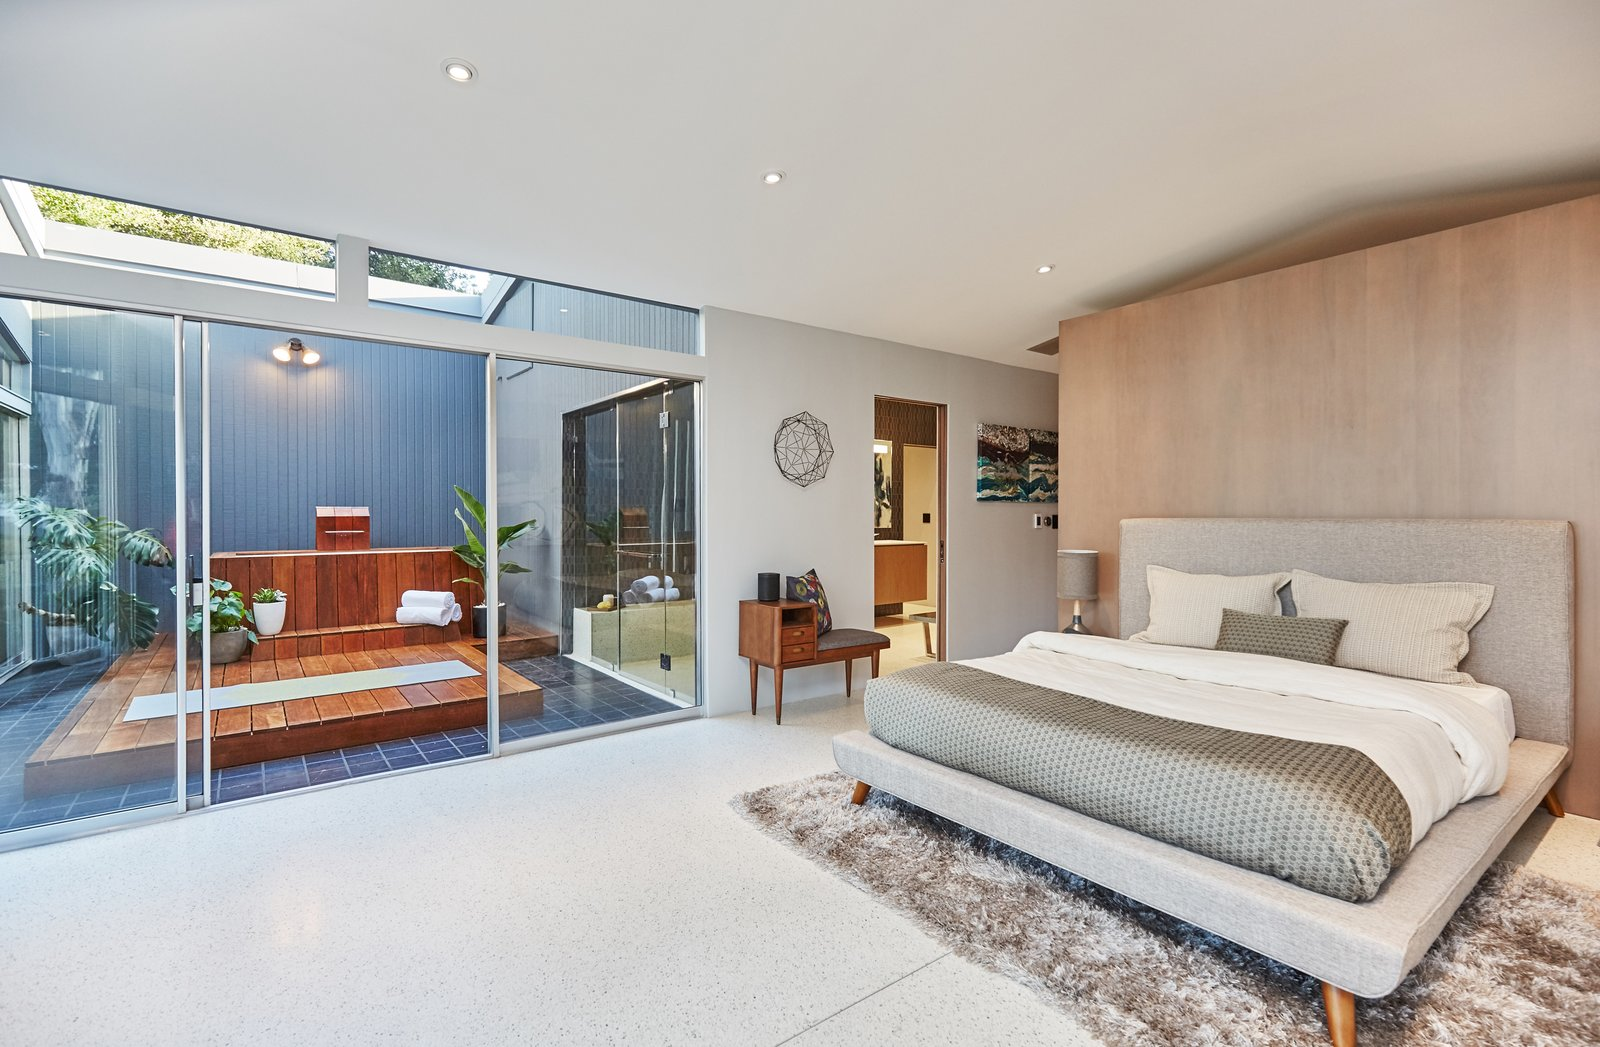 Bedroom, Bed, and Table Lighting  Photo 7 of 10 in A Hexagonal Midcentury Residence in Southern California Offered at $2.89M